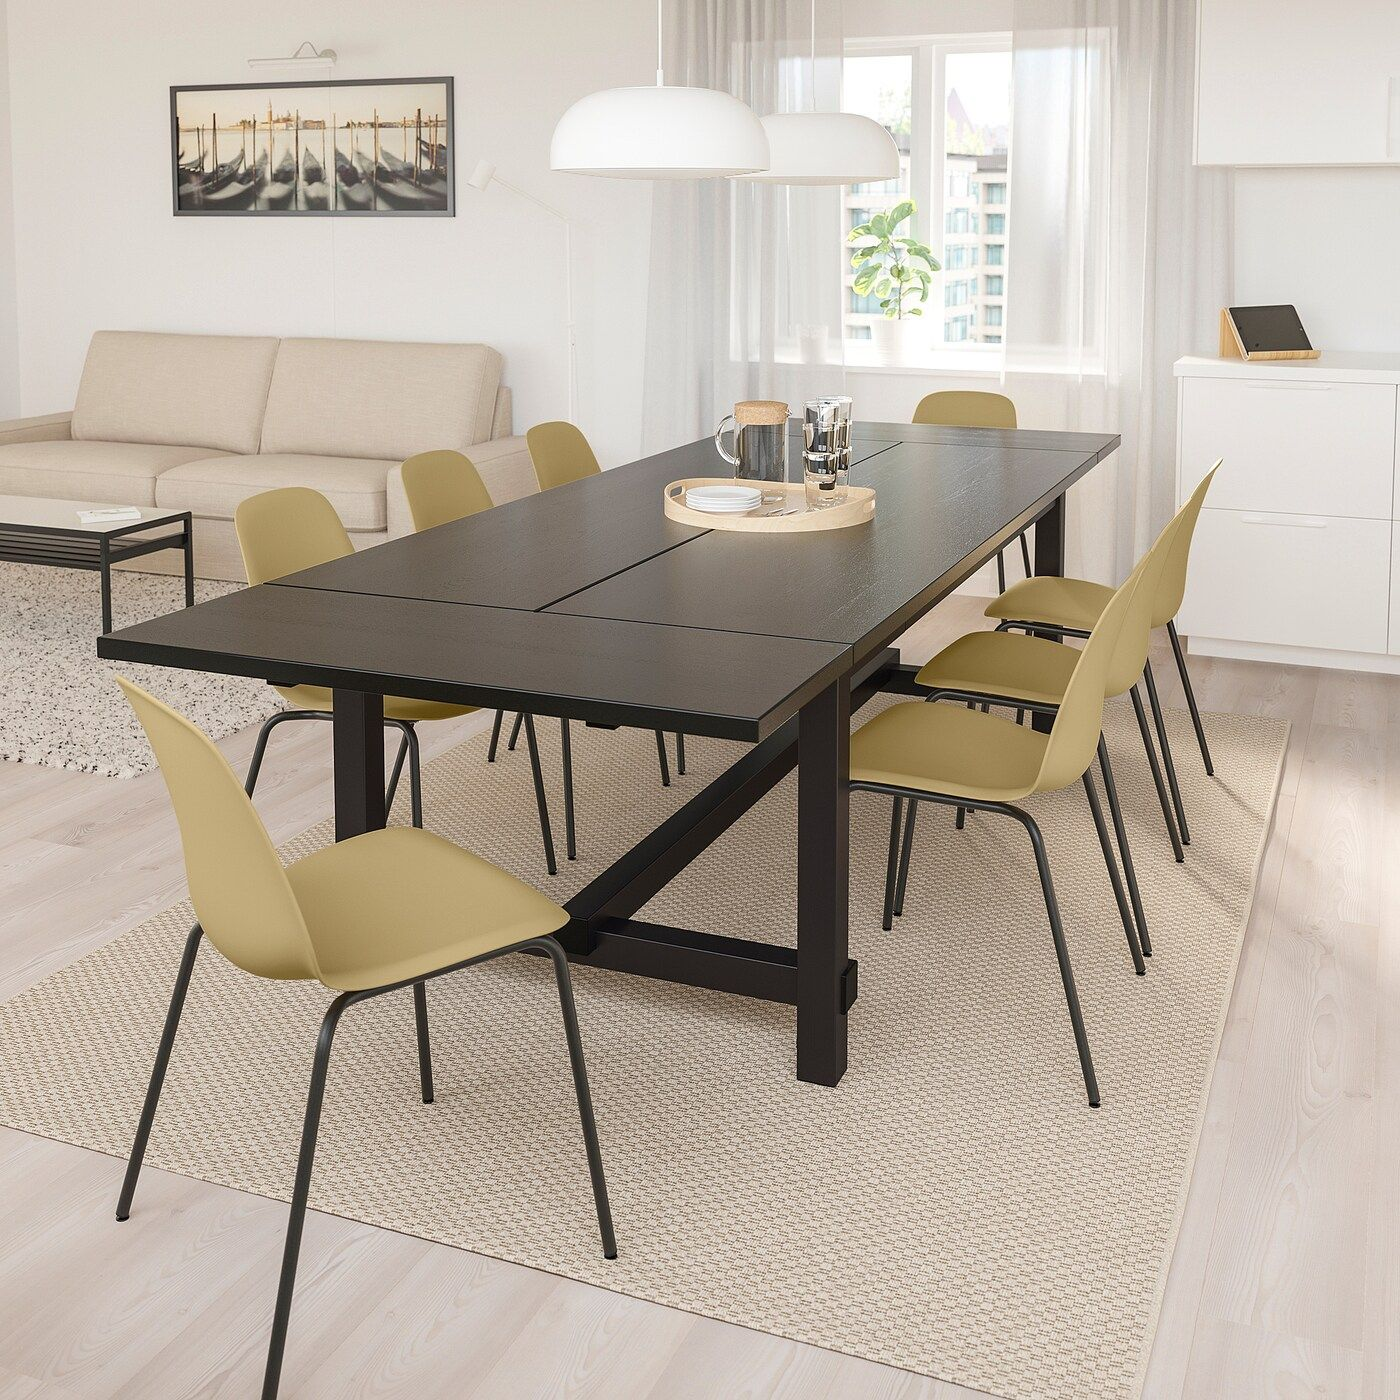 Nordviken Leifarne Table And 6 Chairs Black Light Olive Green Black Ikea In 2020 Dining Table Dining Table Chairs Wood Dining Table